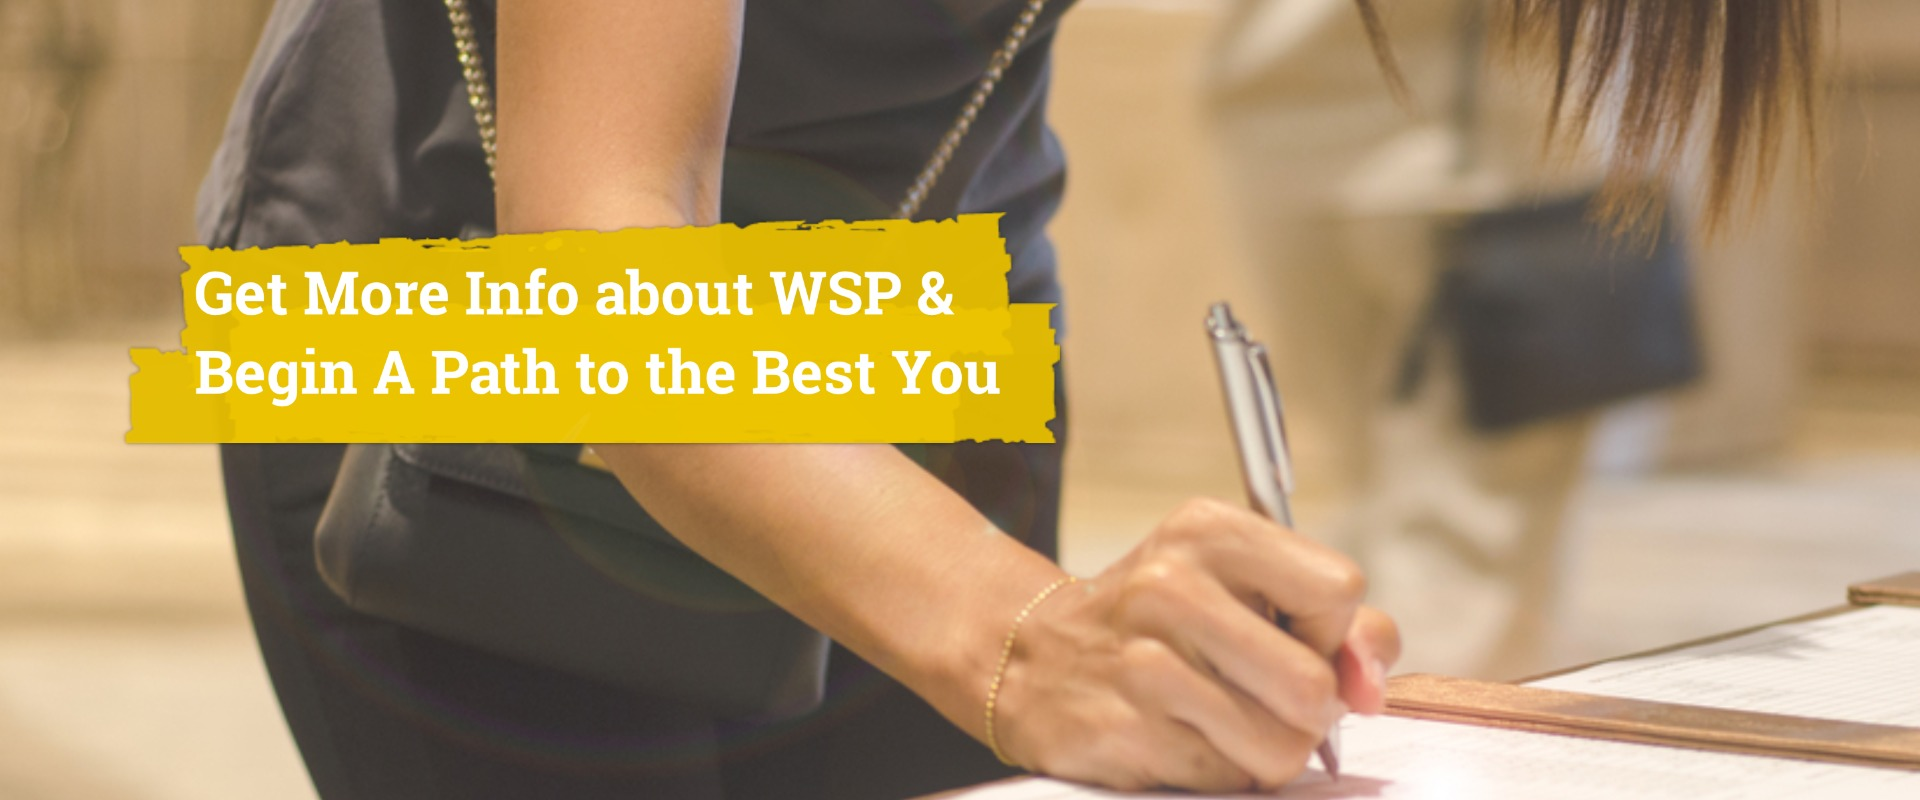 Request information about the WSP program